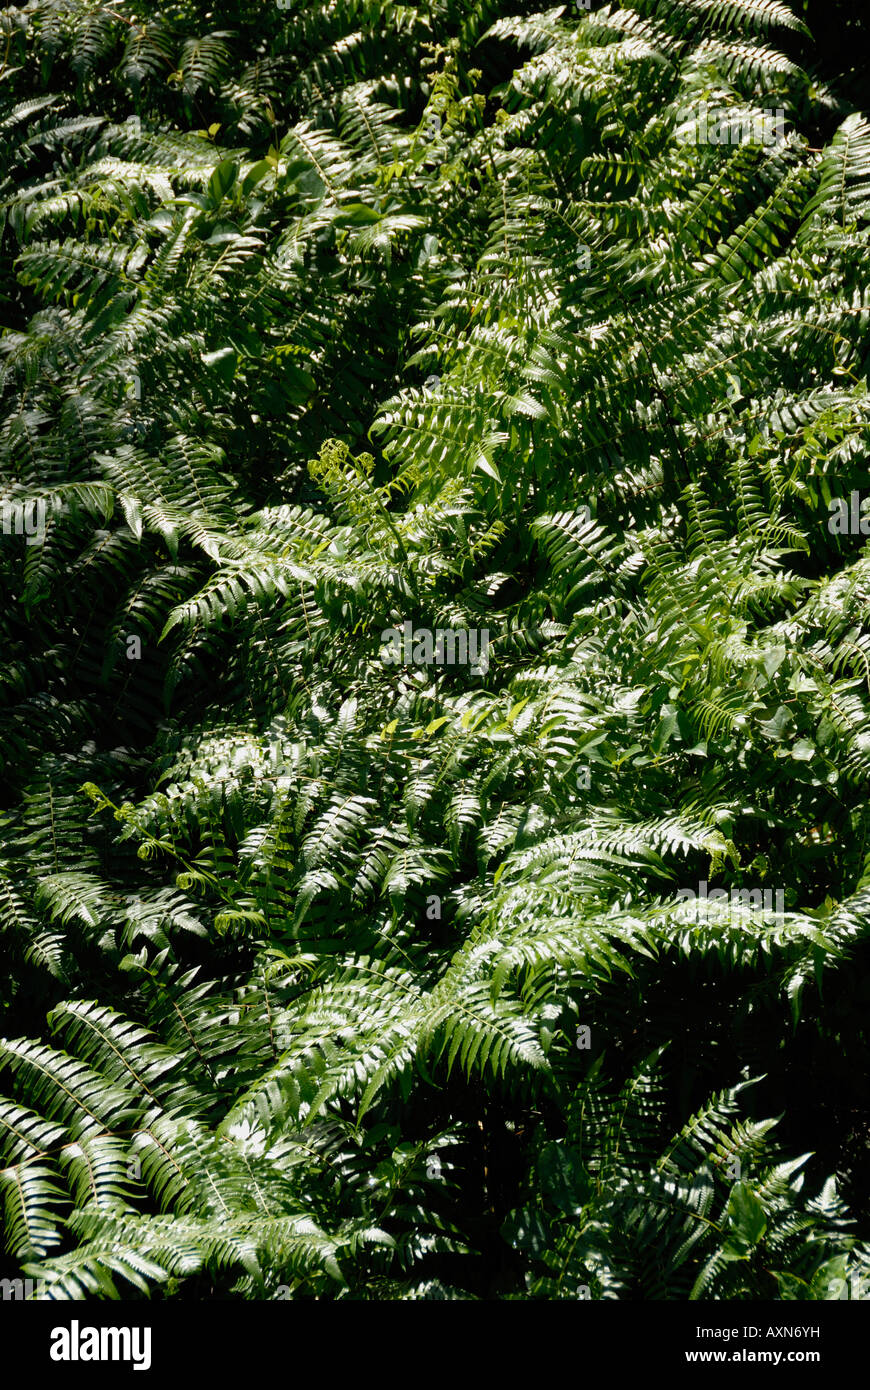 Dense Thicket Stock Photos Amp Dense Thicket Stock Images